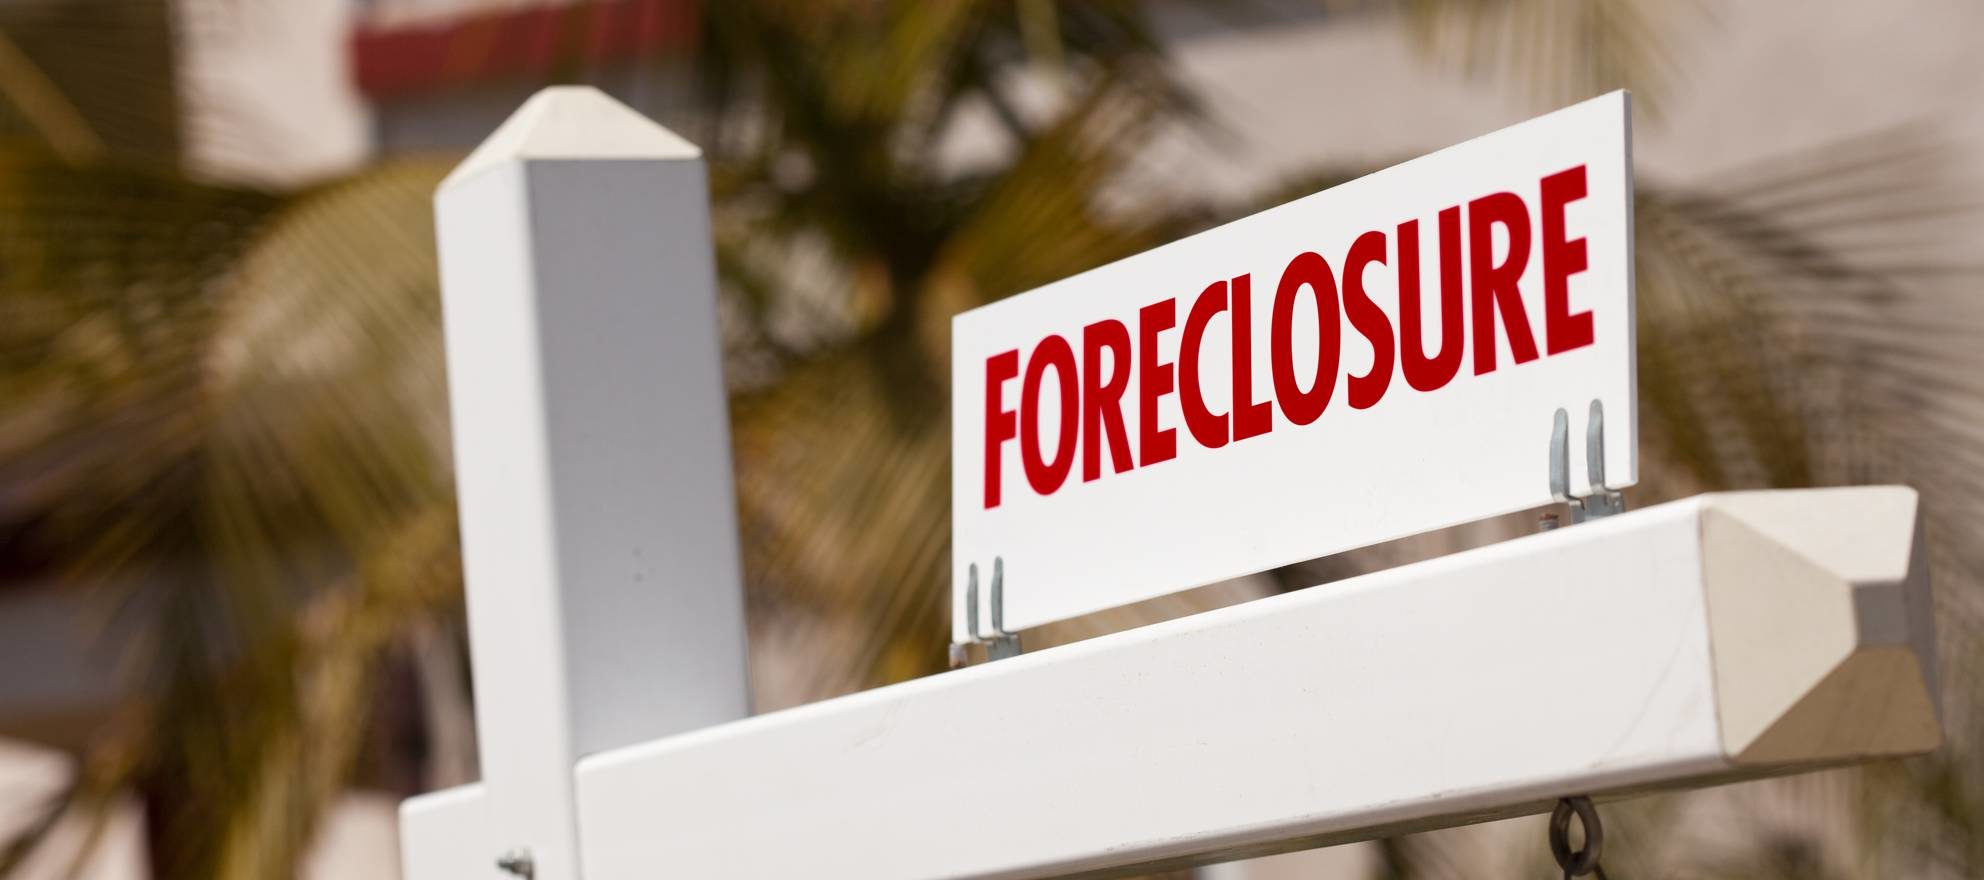 Depending on how you count it, DC is a foreclosure leader